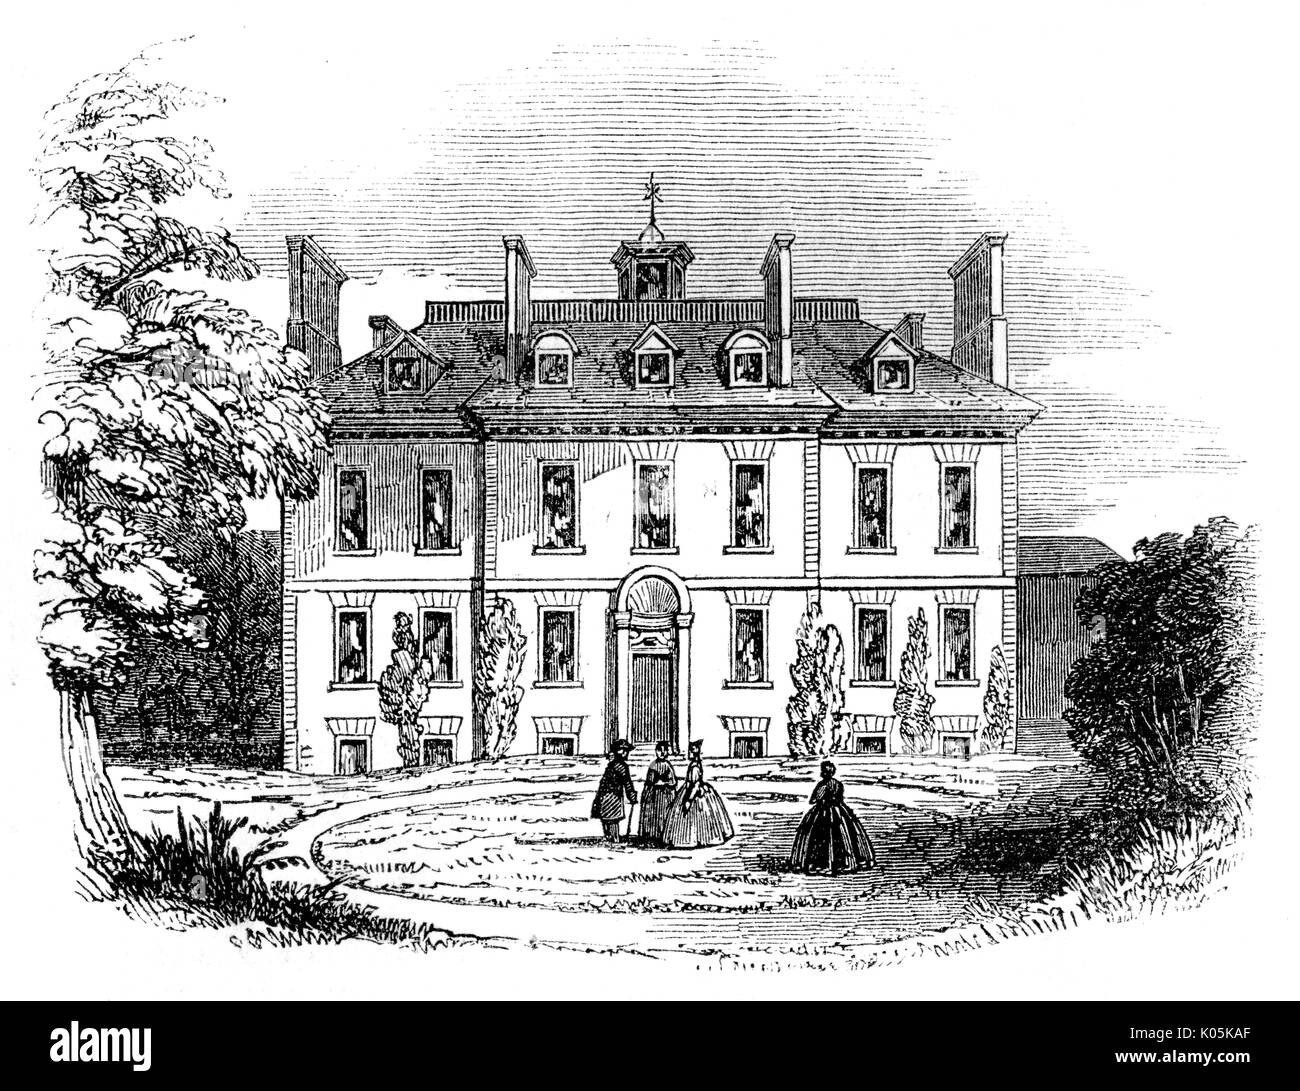 Isaac Watts (1674 - 1748) Abney House, Stoke Newington, home of the divine and writer       Date: - Stock Image